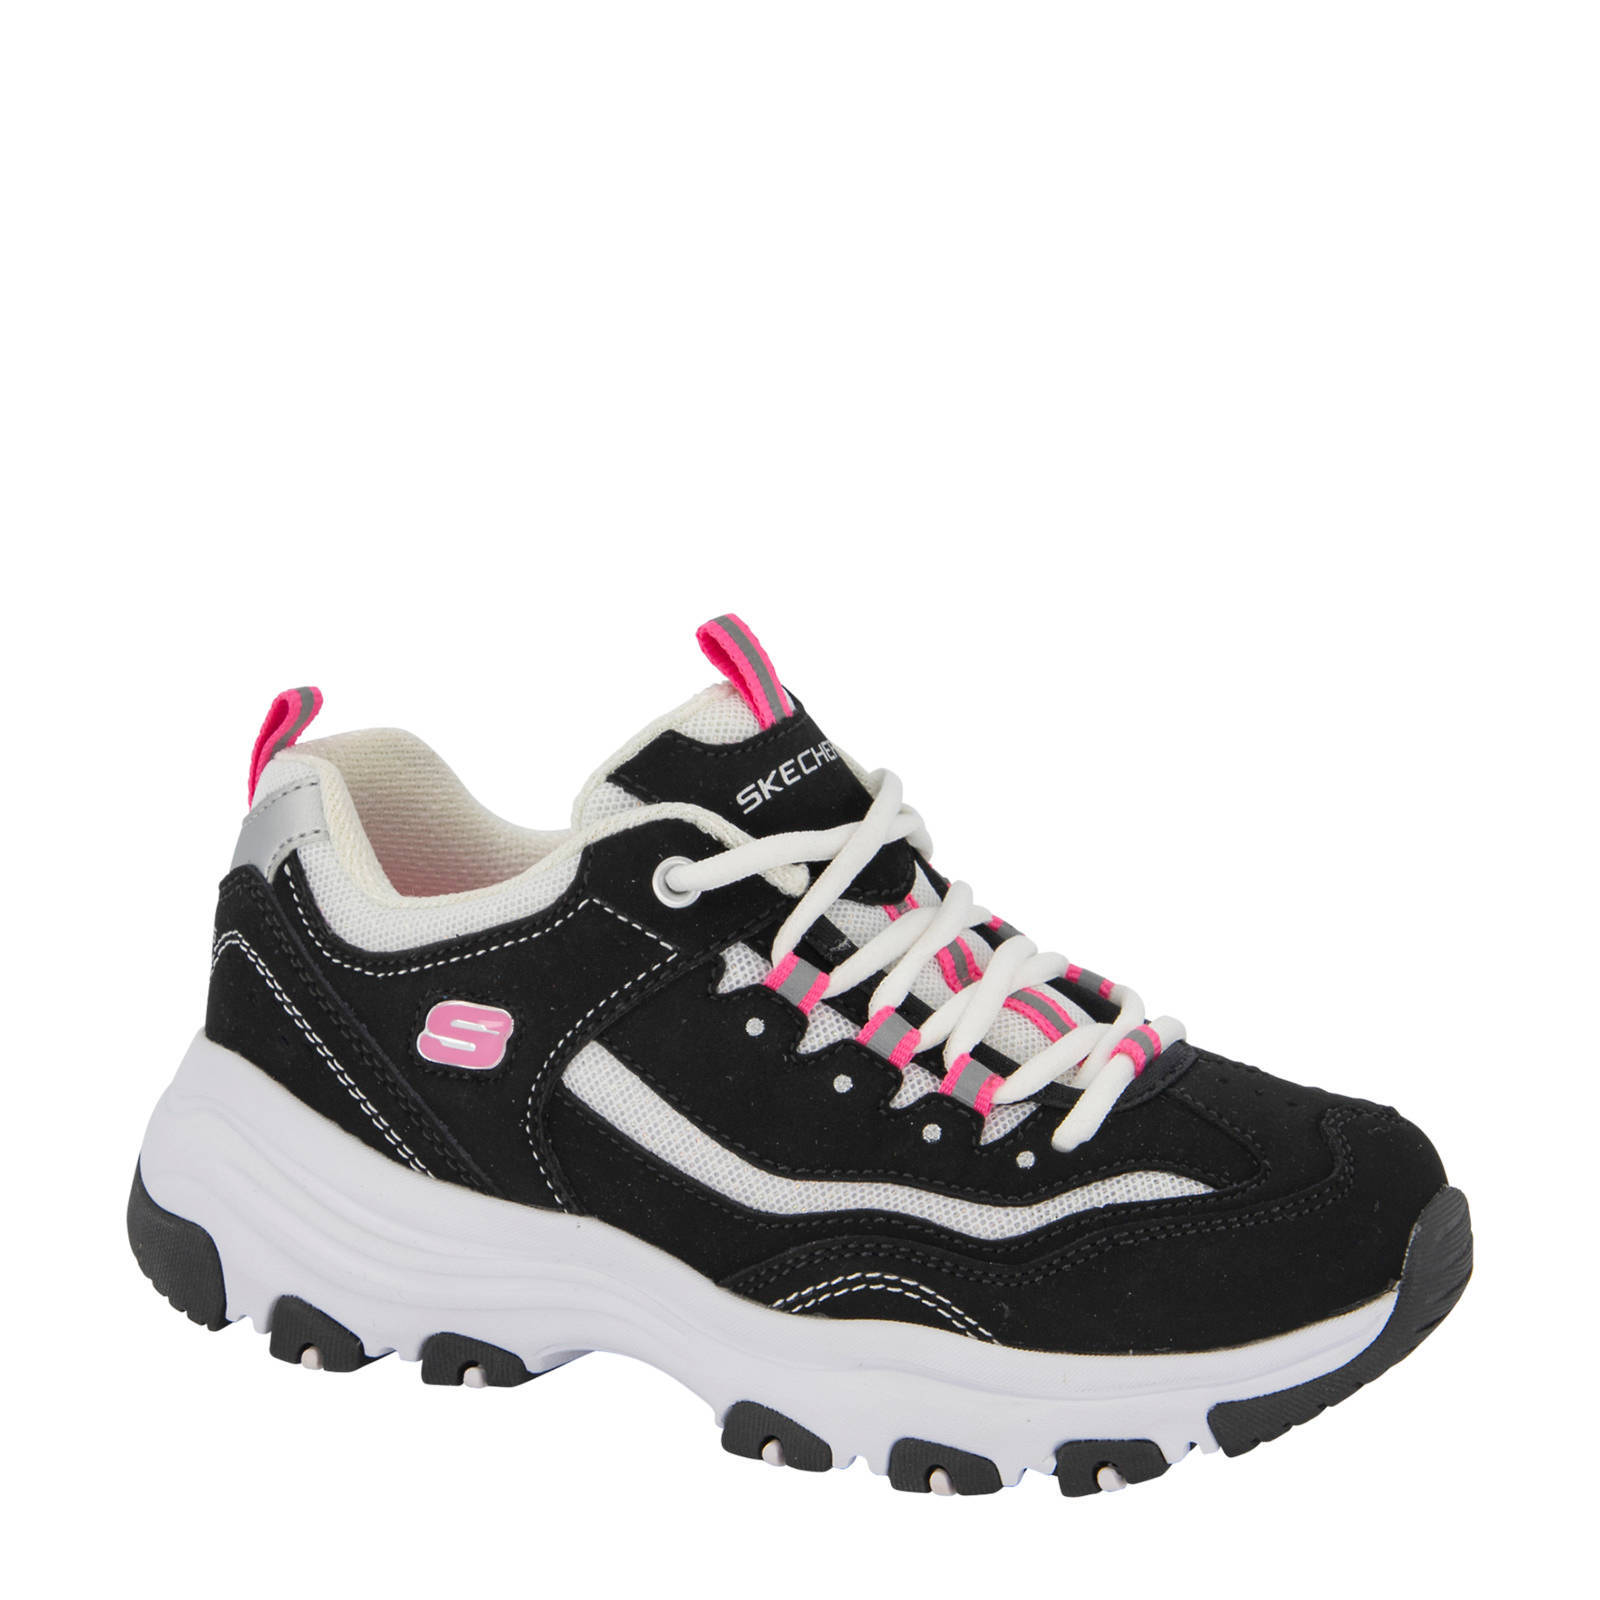 Skechers D'Lite Chunky Sneakers In White And Pink Multi